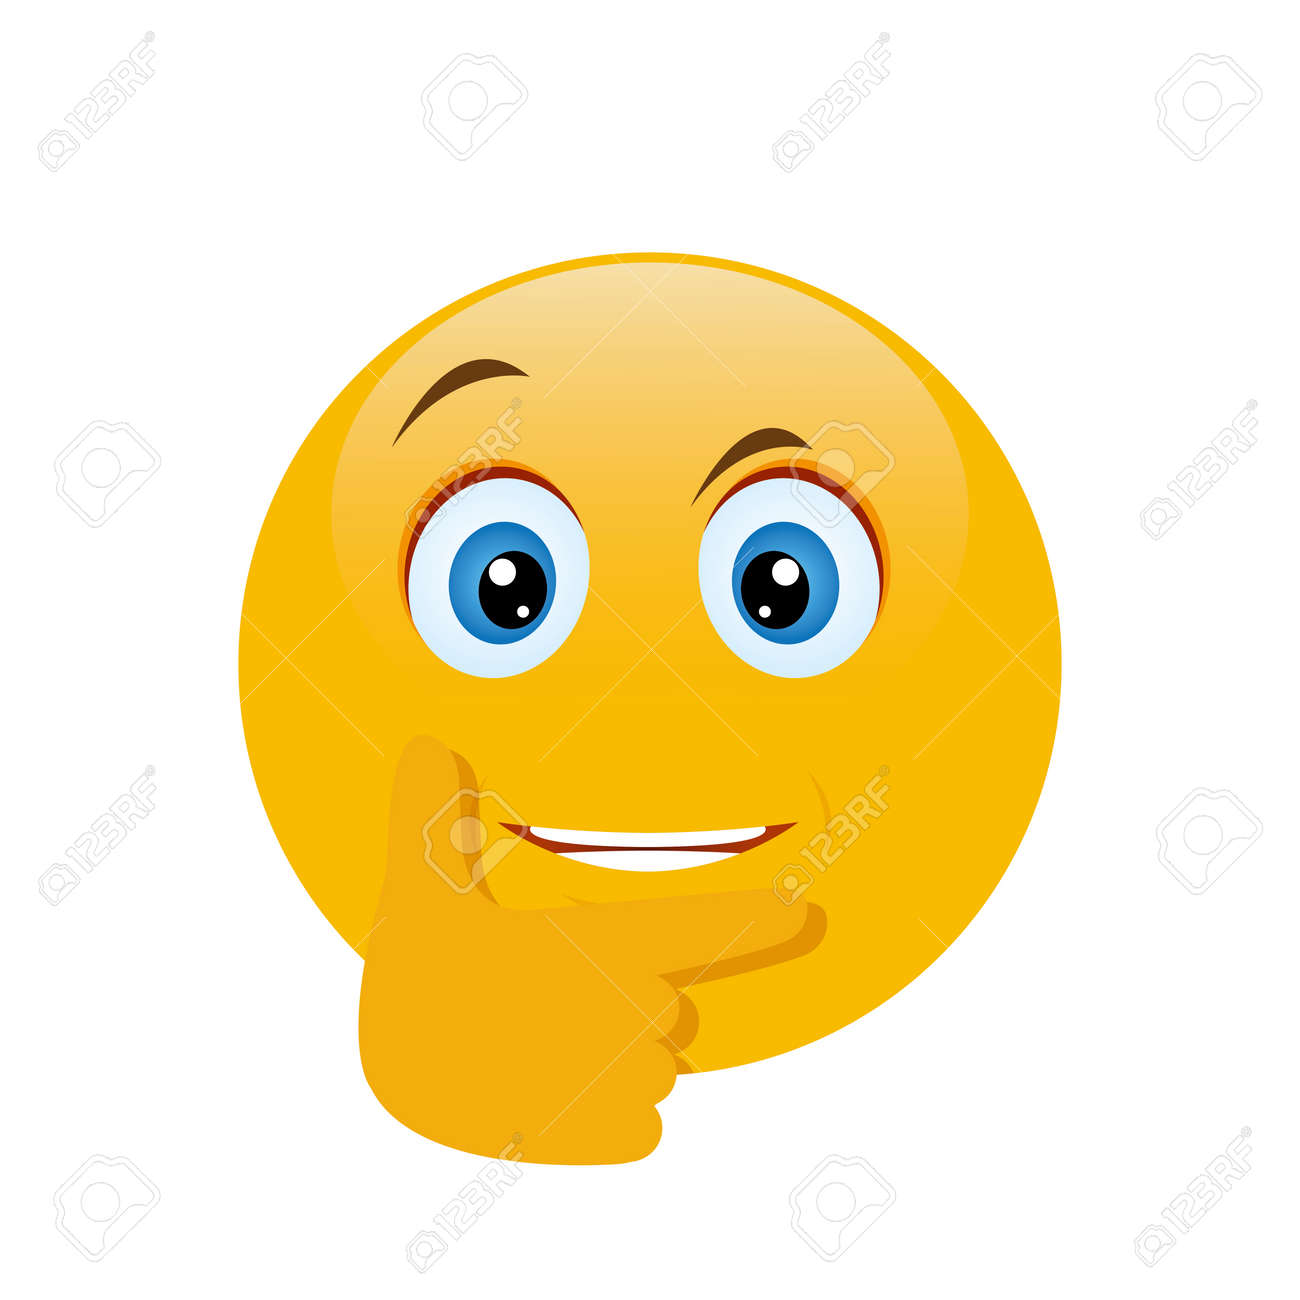 thinking face emoji with